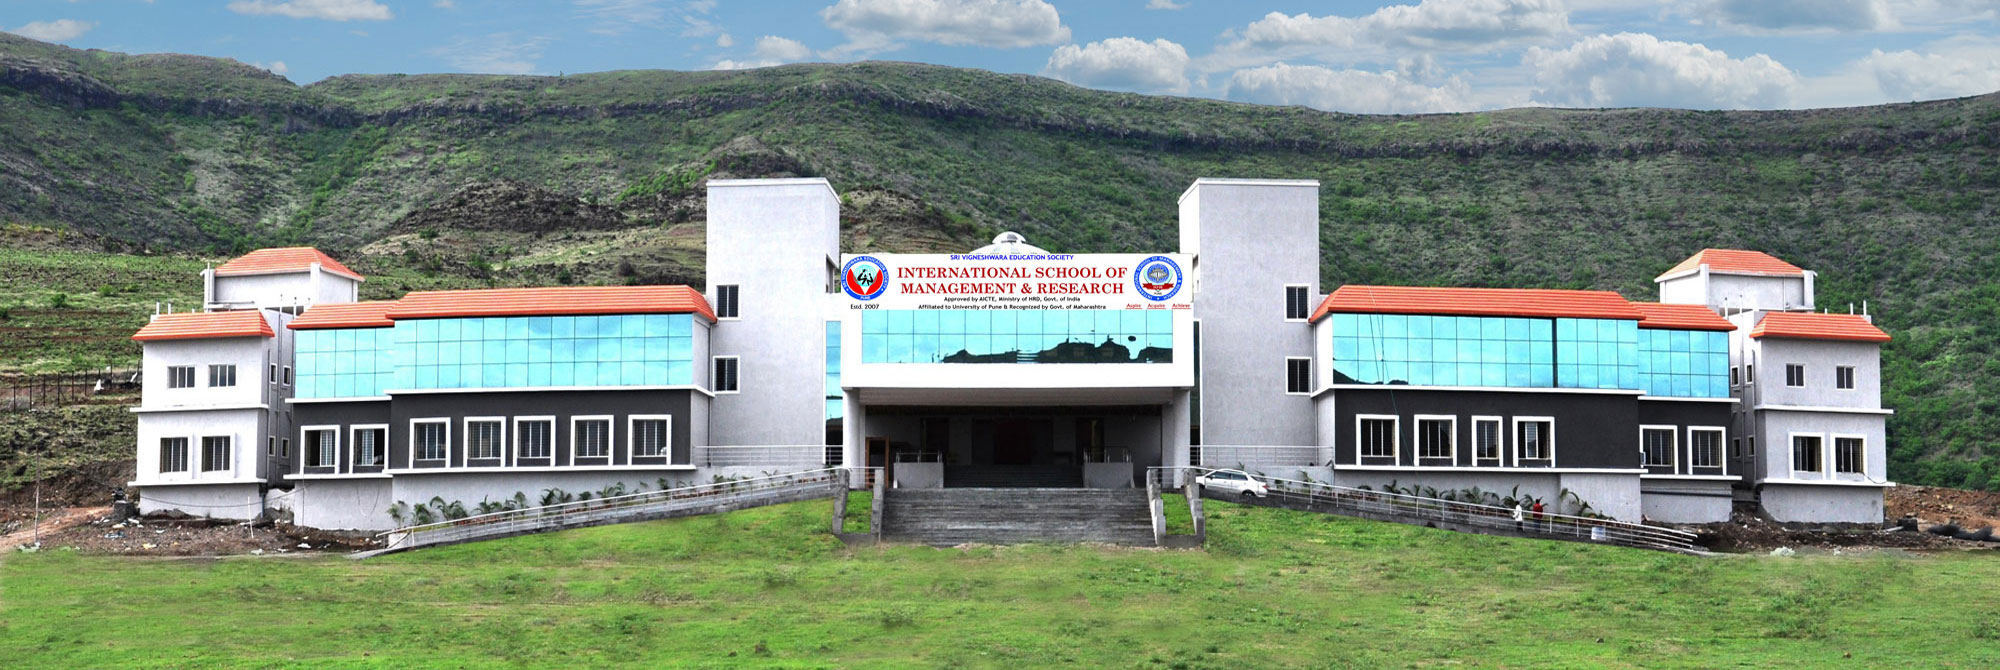 International School of Management & Research